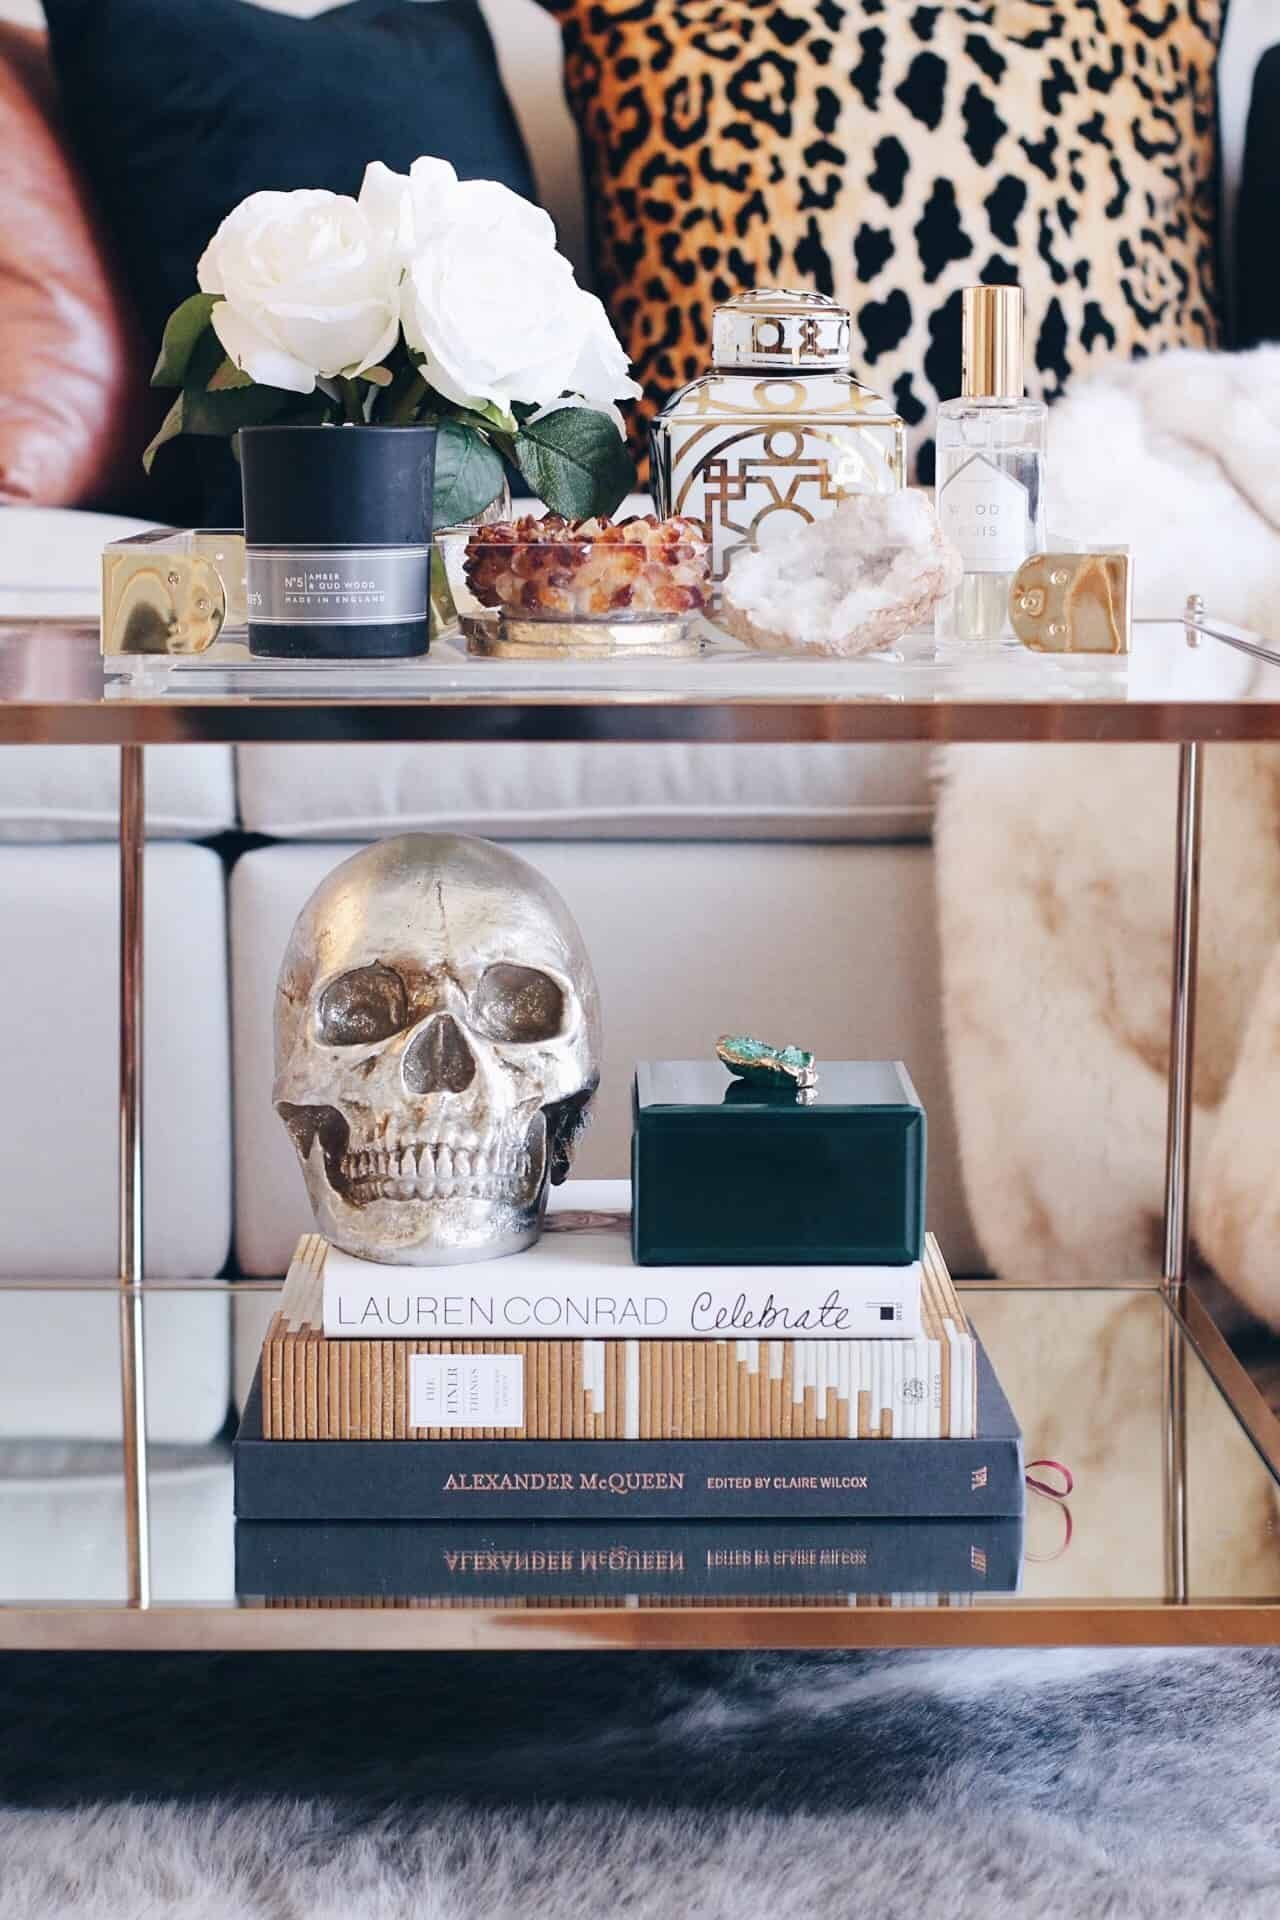 The 10 Items You Need To Create An Instagram Ready Coffee Table Coffee Table Books Decor Coffee Table Inspiration Table Decor Living Room [ 1920 x 1280 Pixel ]